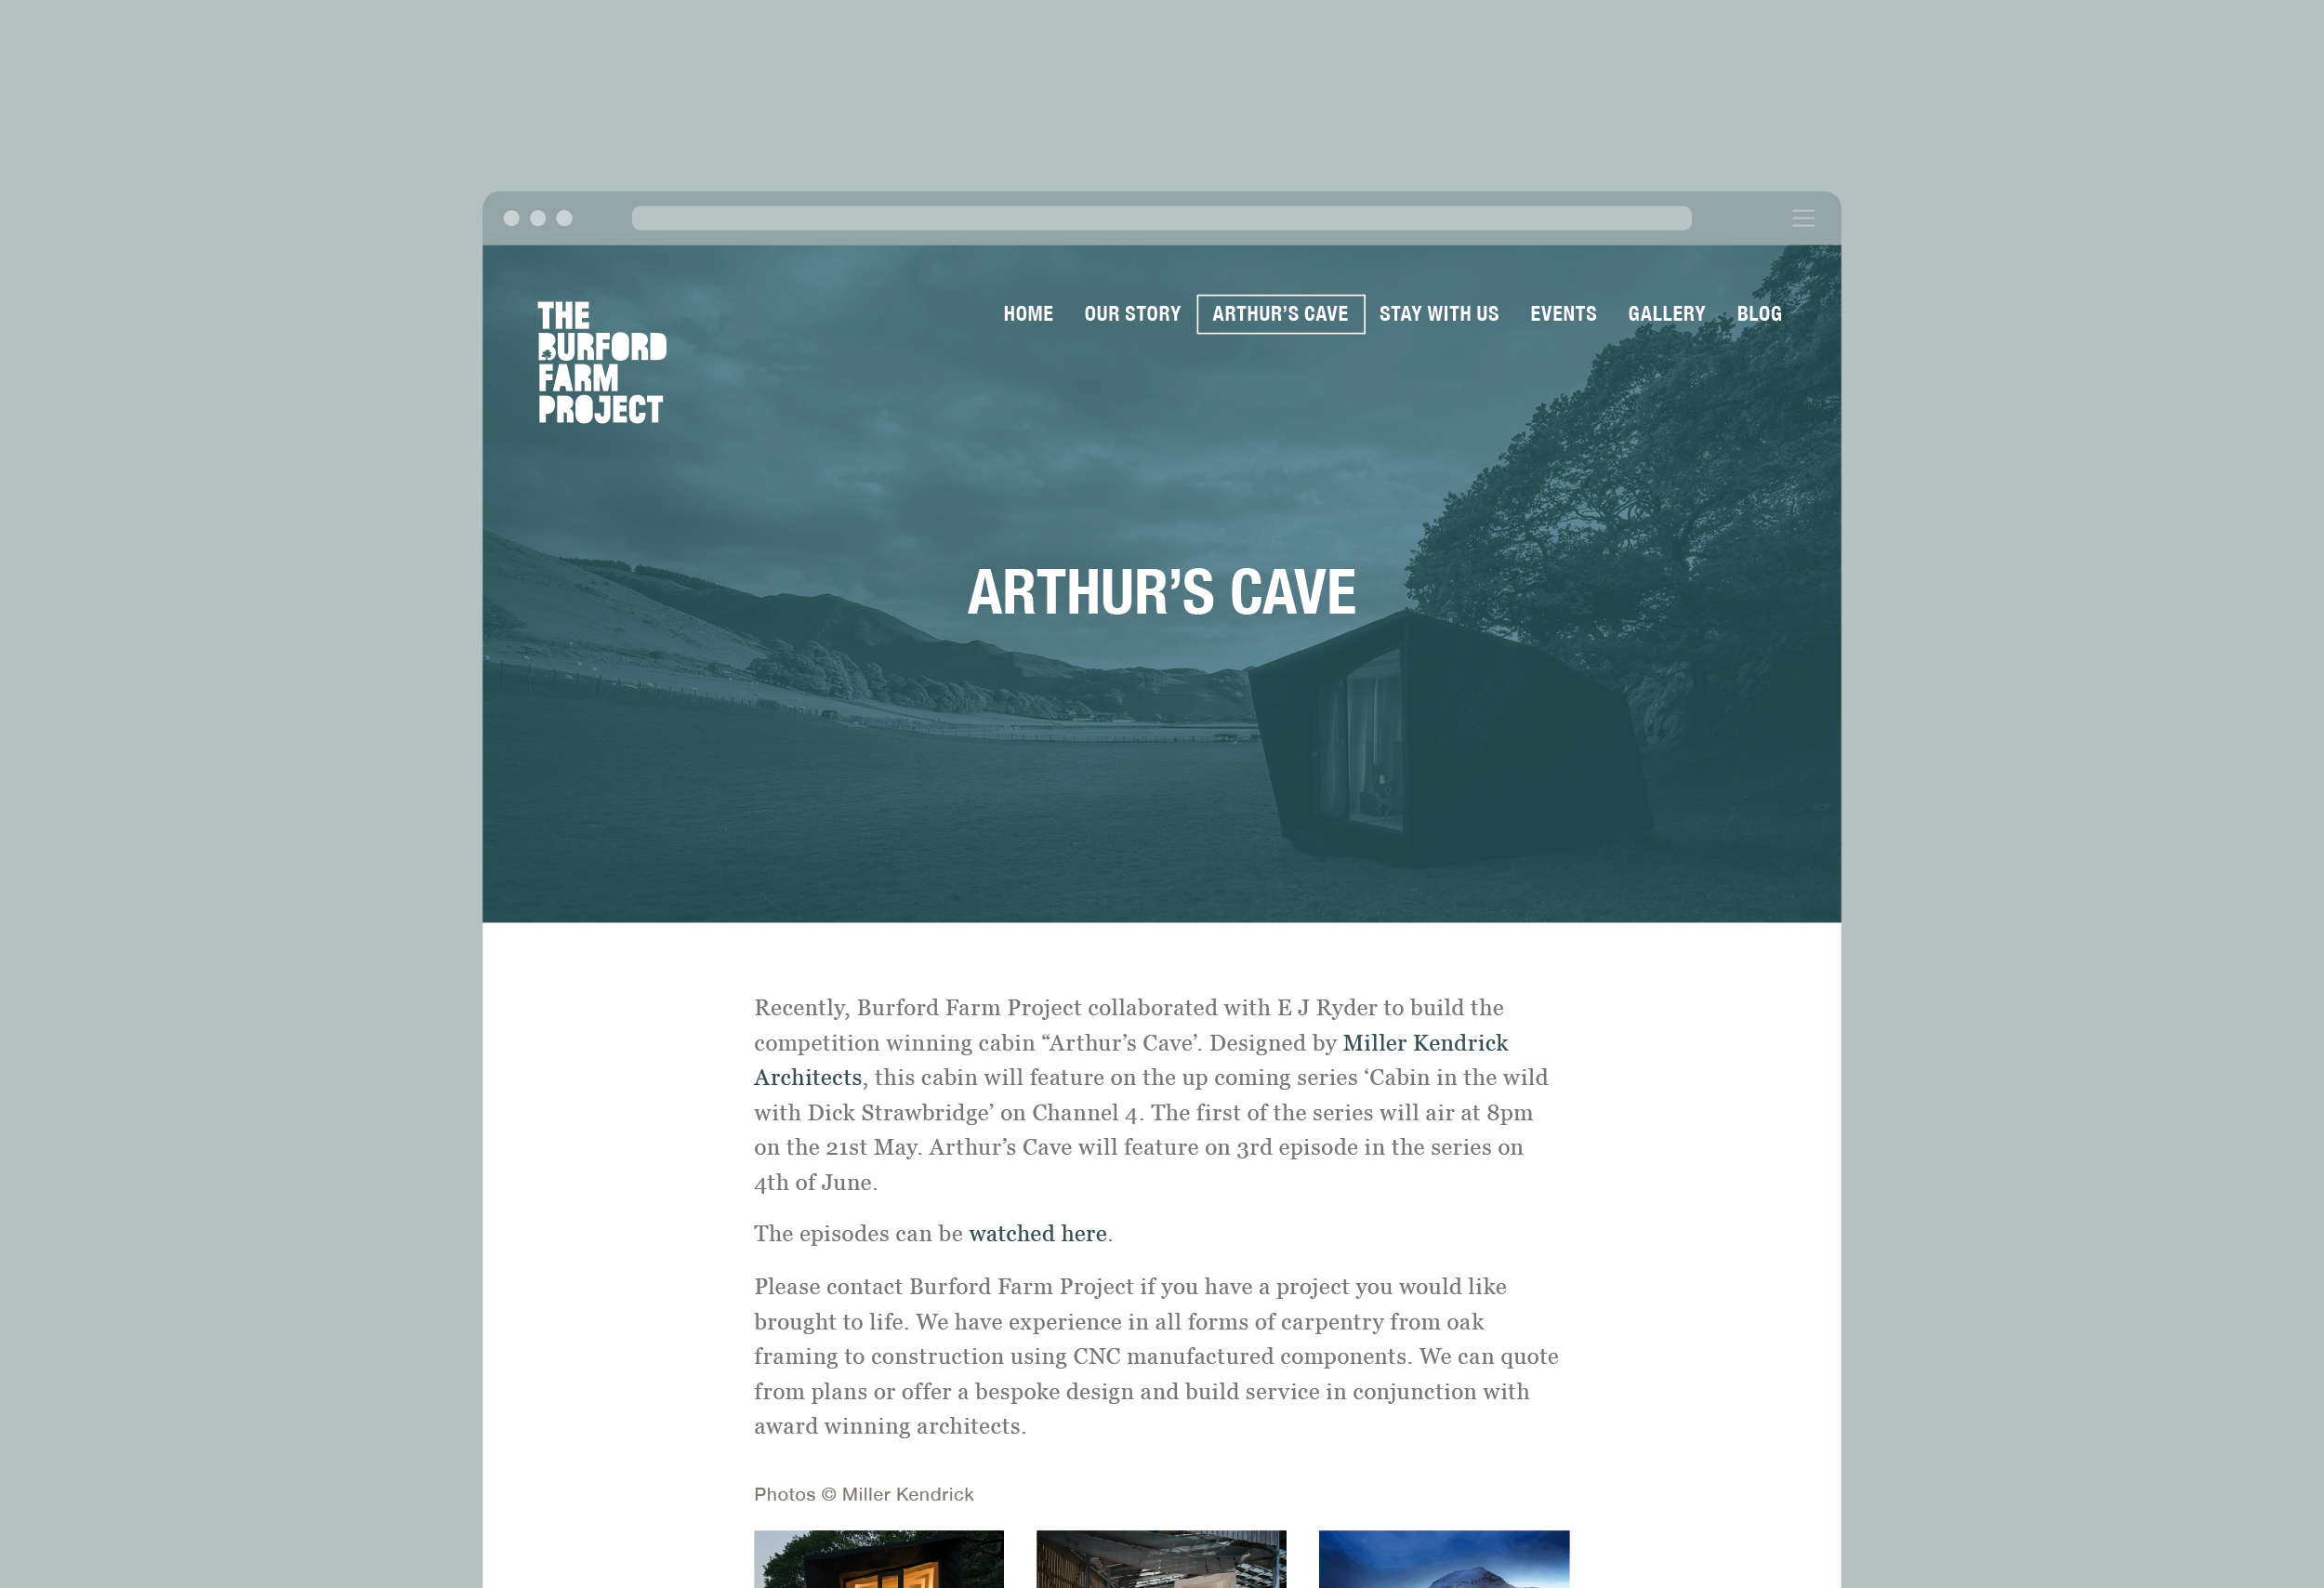 Alan_Clarke-Symonds_Burford Farm_responsive website design_desktop view_Arthurs cave2.jpg